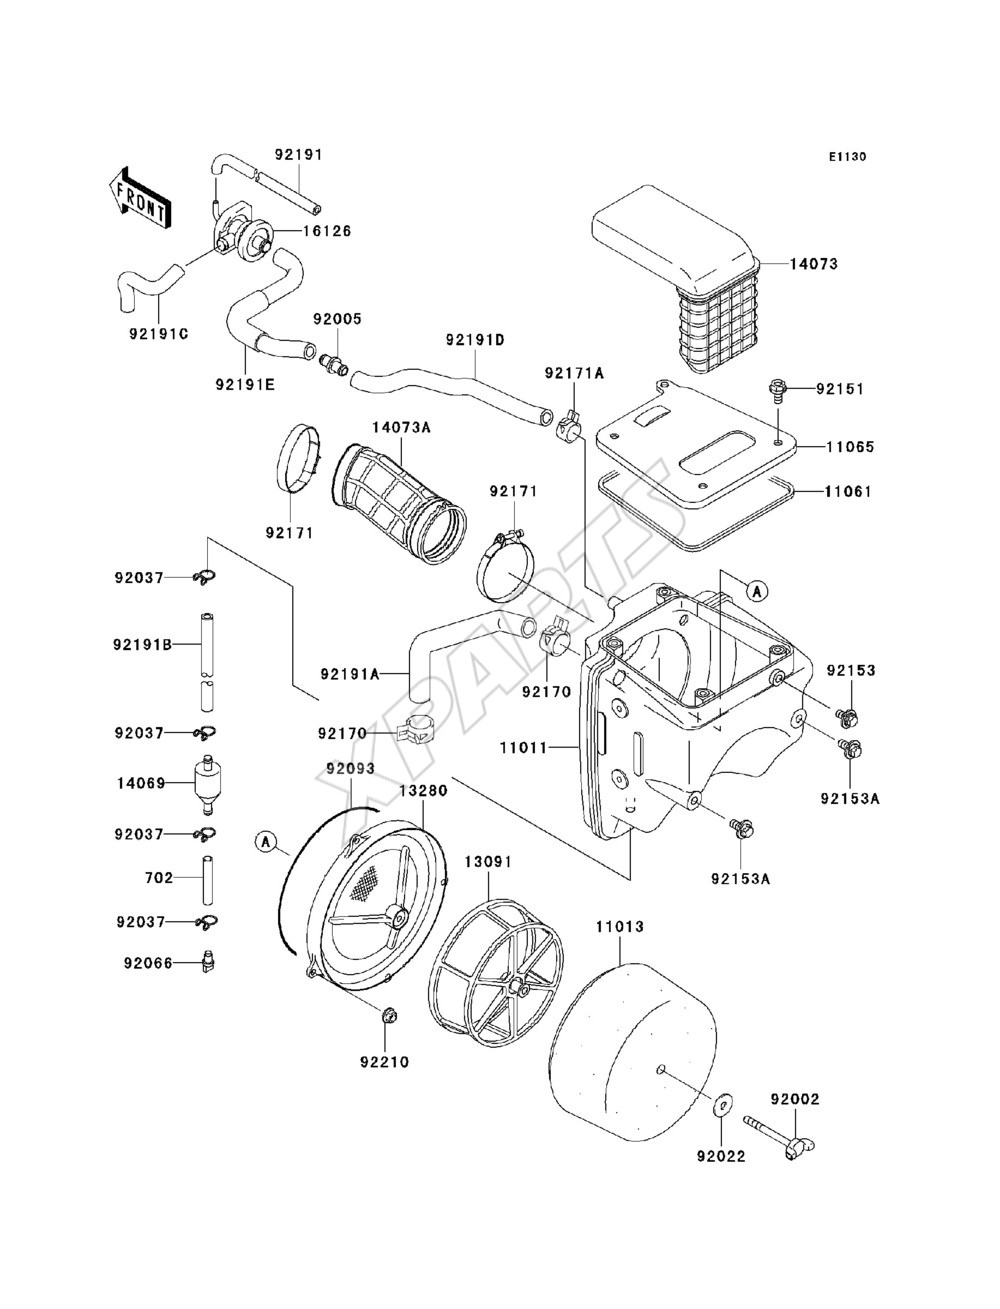 Kawasaki Klx250s Klx250 H6f Fra 2006 Originale Reservedele Motorcycle Parts Kx65a6f Kx65 Engine Covers Diagram Billede Til Varegruppe Air Cleaner